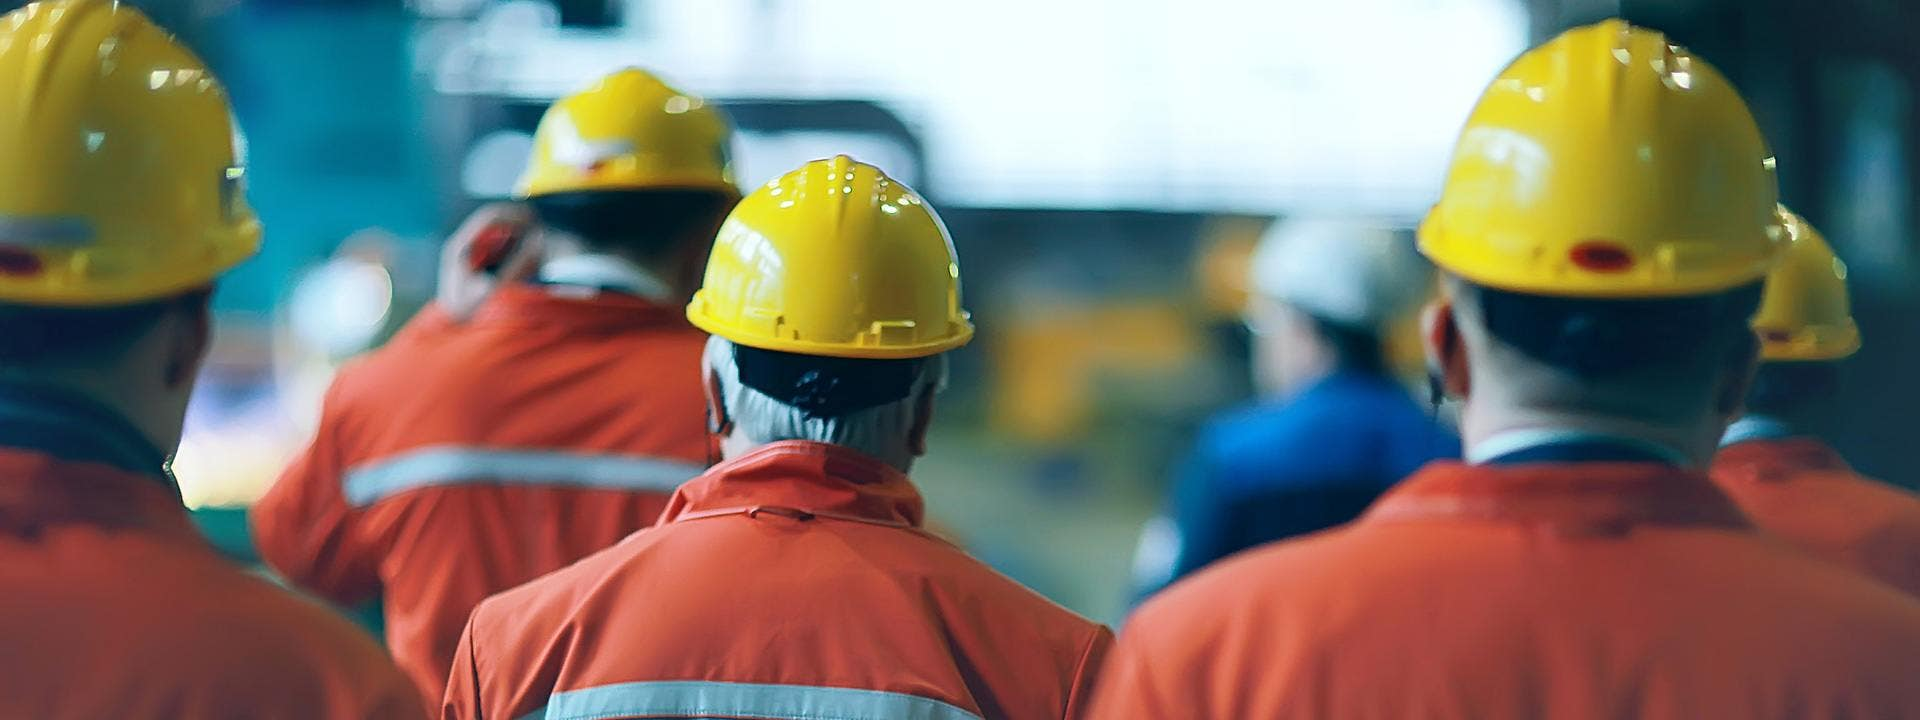 How to Become a Construction Health & Safety Officer